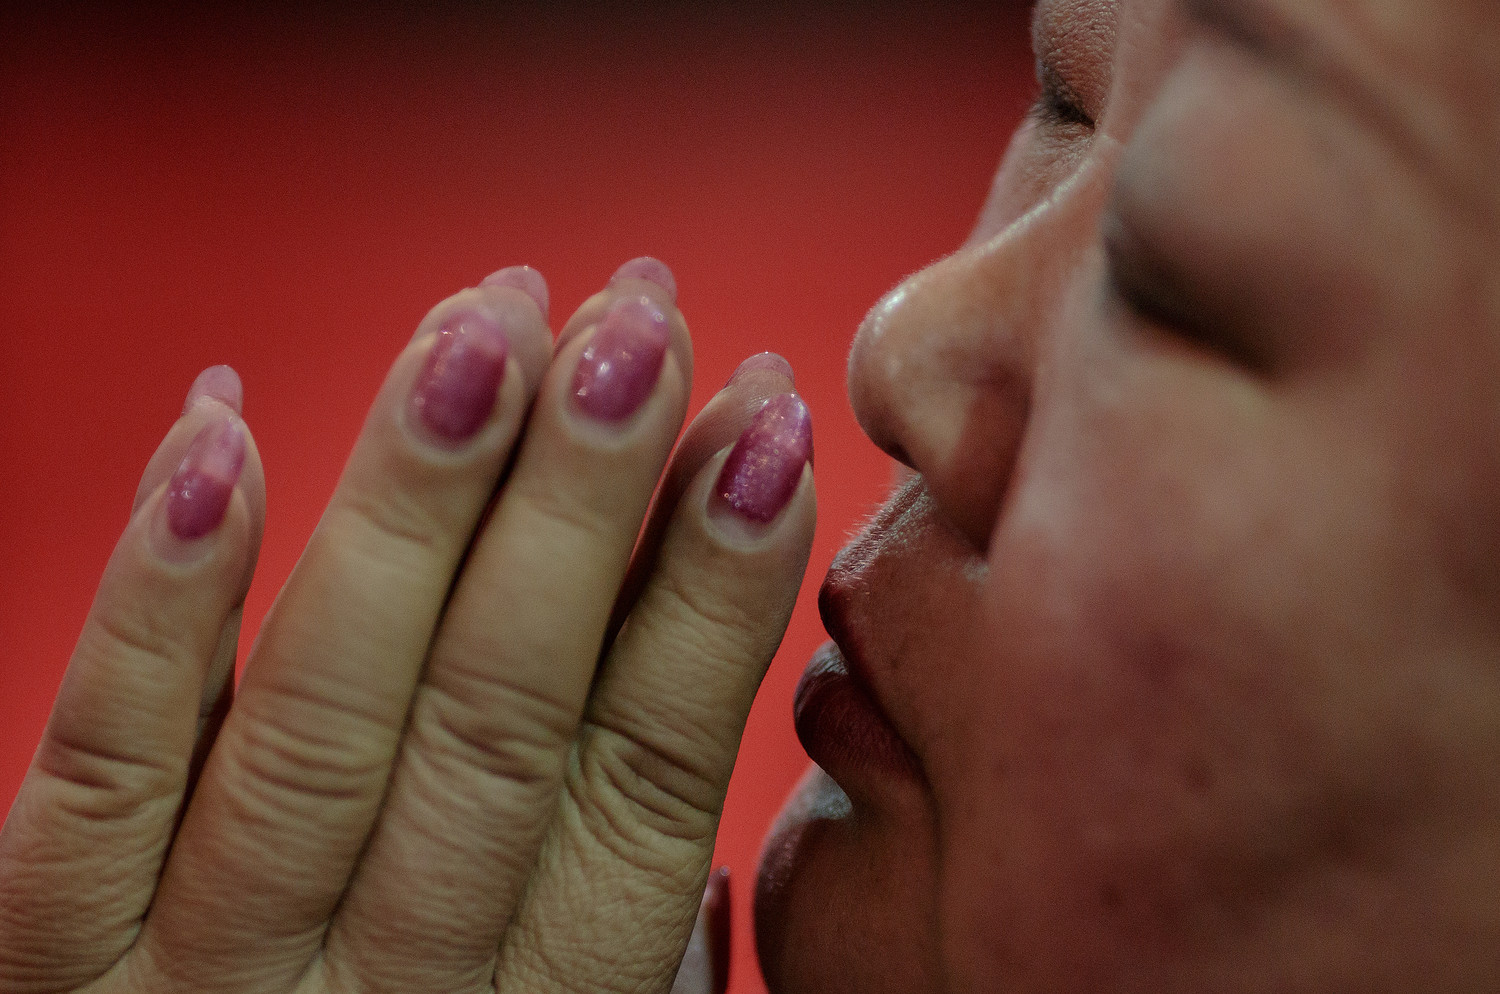 A woman prays during Holy Thursday Mass March 29 at the Cathedral of the Immaculate Conception in Beijing. For the first time in decades, all of the Catholic bishops in China are in full communion with the Pope, the Vatican announced Sept. 22.